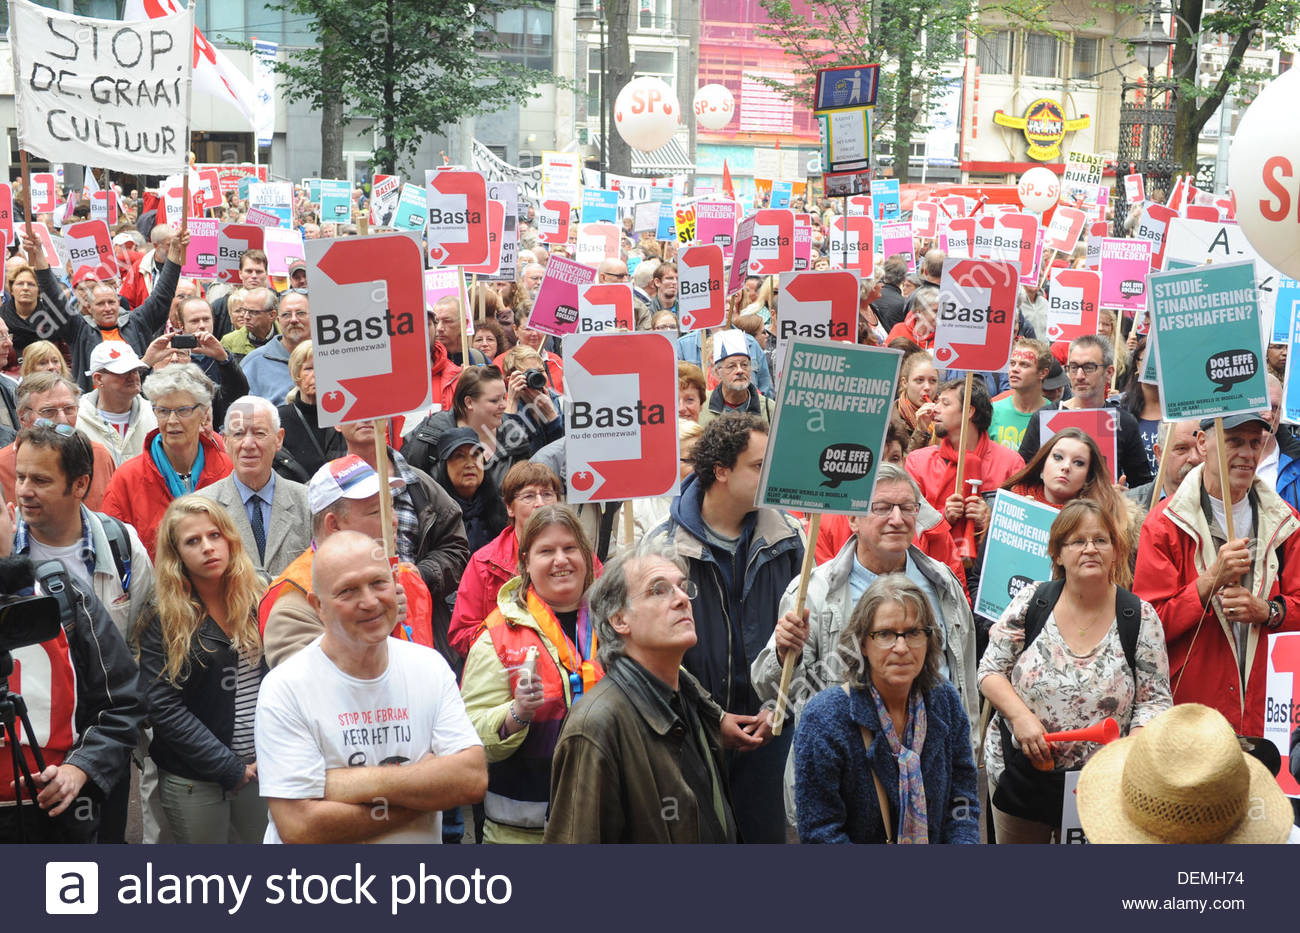 Amsterdam, Netherlands. 21st Sep, 2013. Demonstration against government cuts. Amsterdam NL  In Cities throughout The Netherlands demonstrators take to the streets to protest against proposed governemnt cuts. Demonstrators listen to speeches on Beursplein - Stock Image